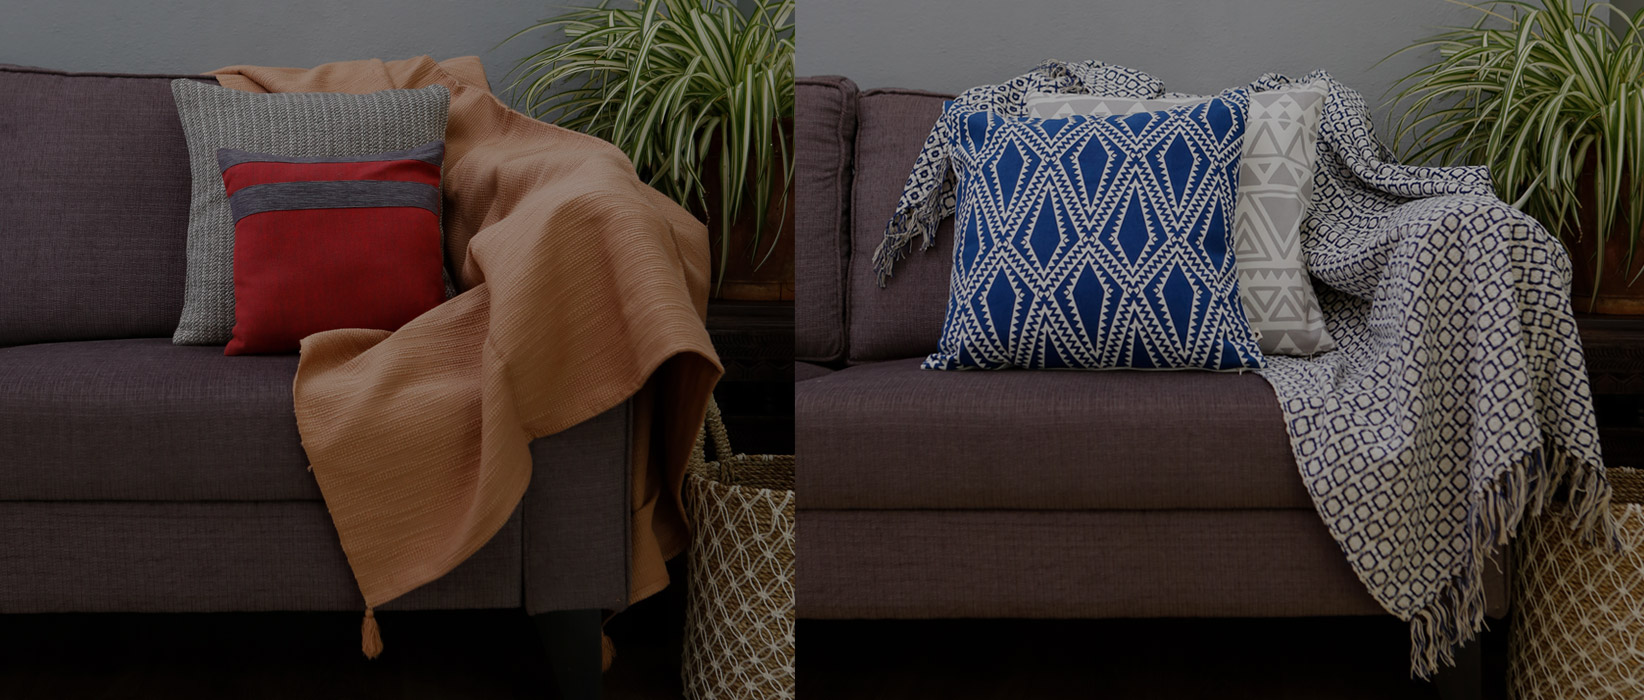 Warm and Cozy Handwoven throws